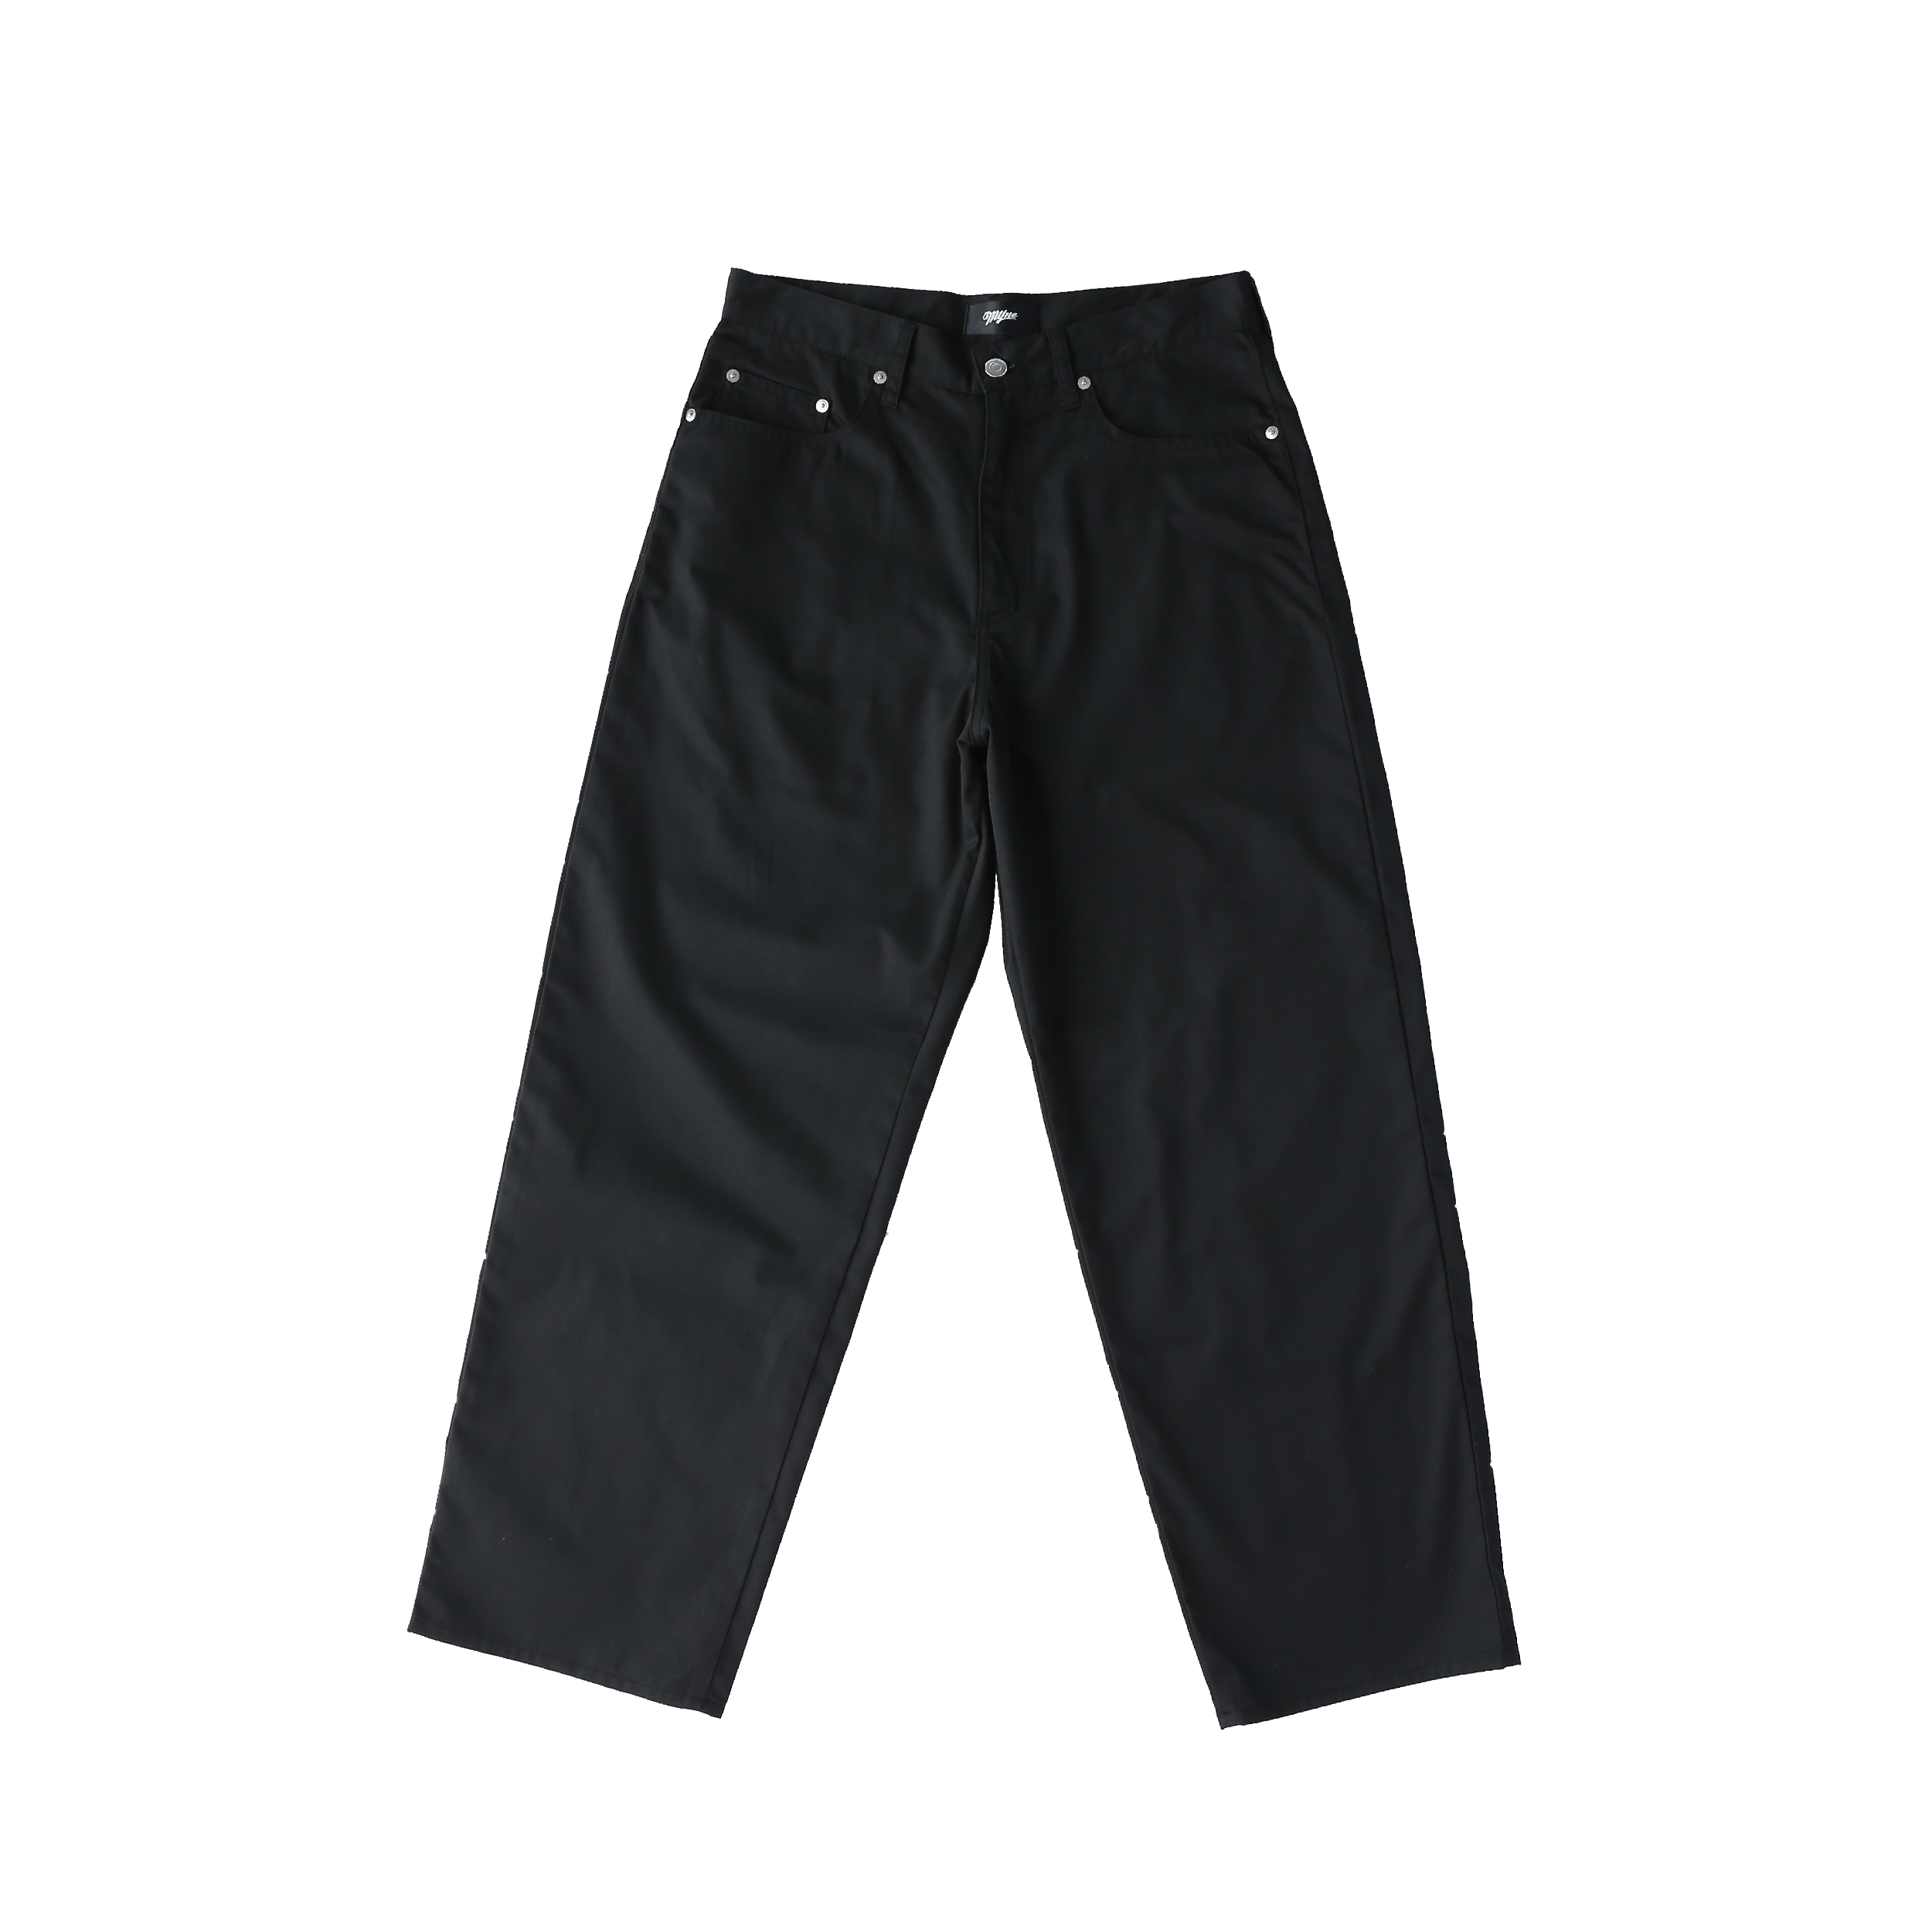 Wappen baggy pants / BLACK - 画像1